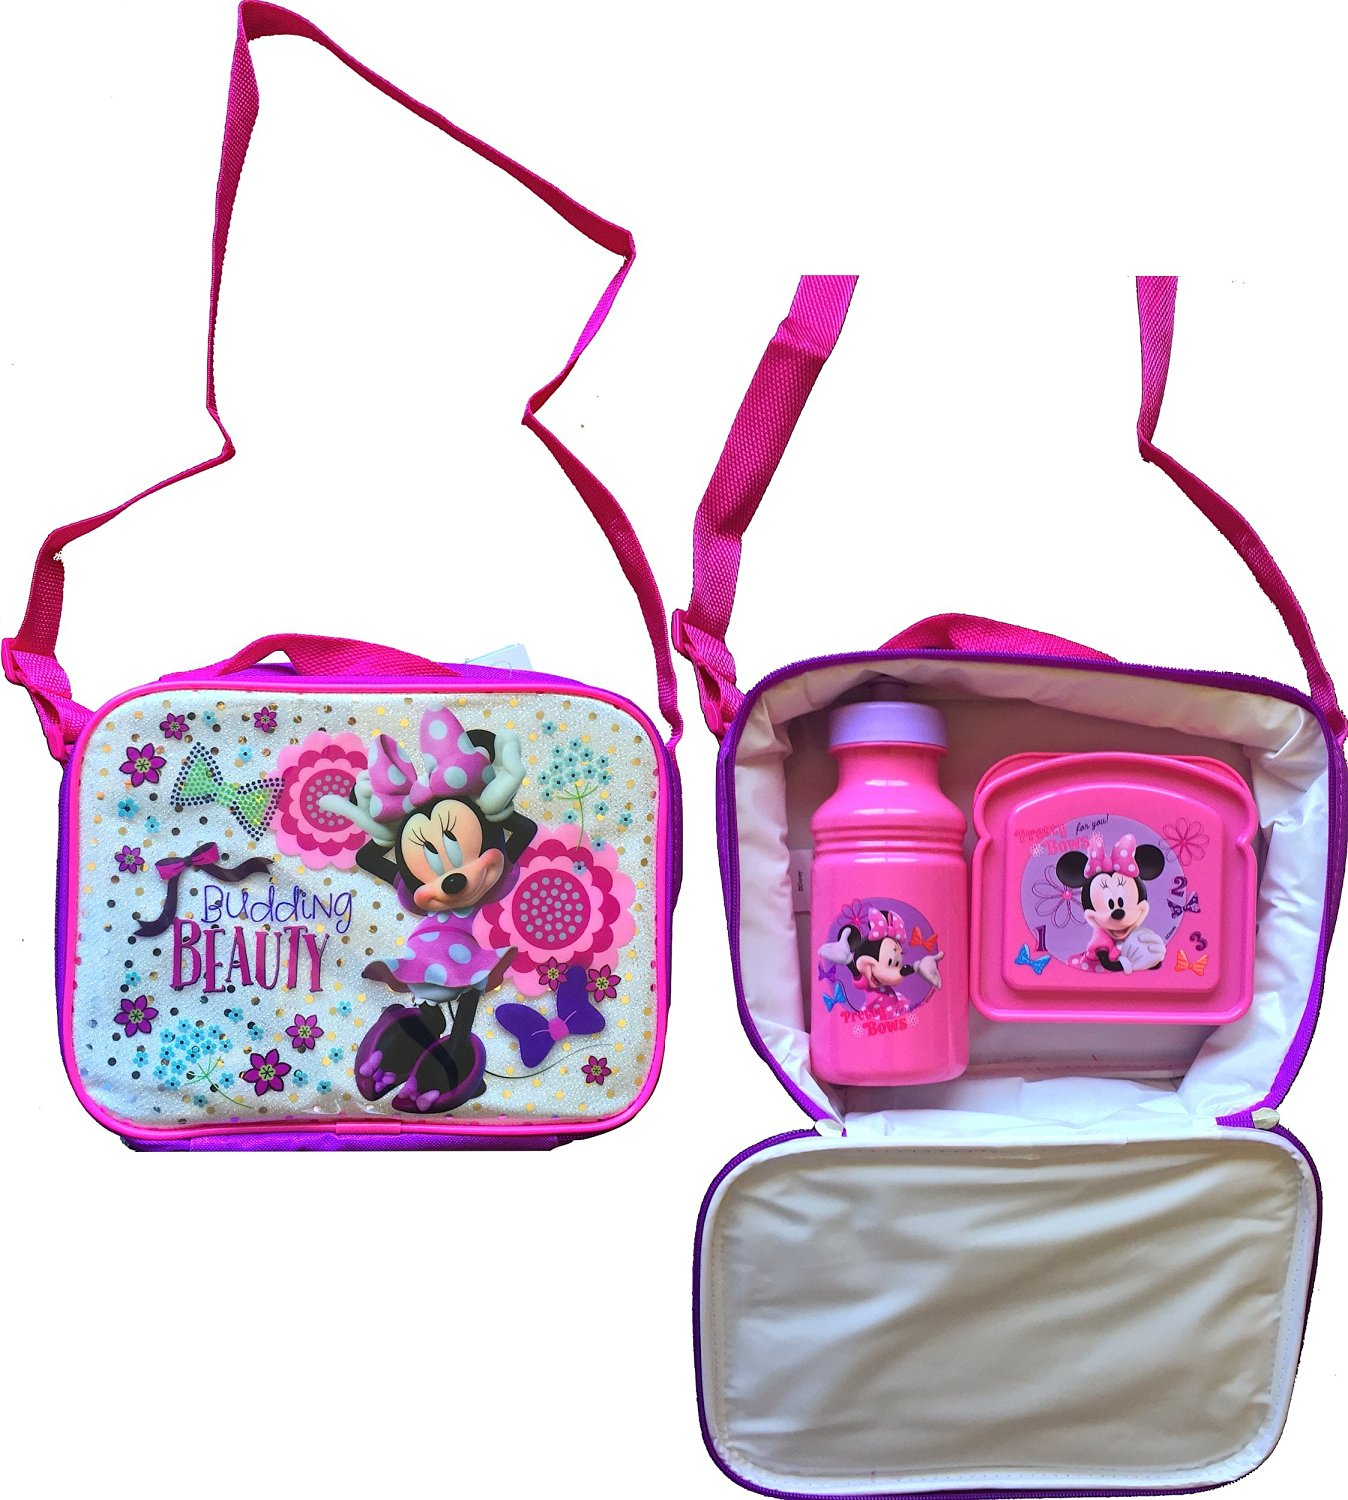 Disney Minnie Mouse Pink Adjustable Strap Minnie Mouse Carry Lunch Box with Minnie Mouse Pull-top Water Bottle and Minnie Mouse Lunch Sandwich Container